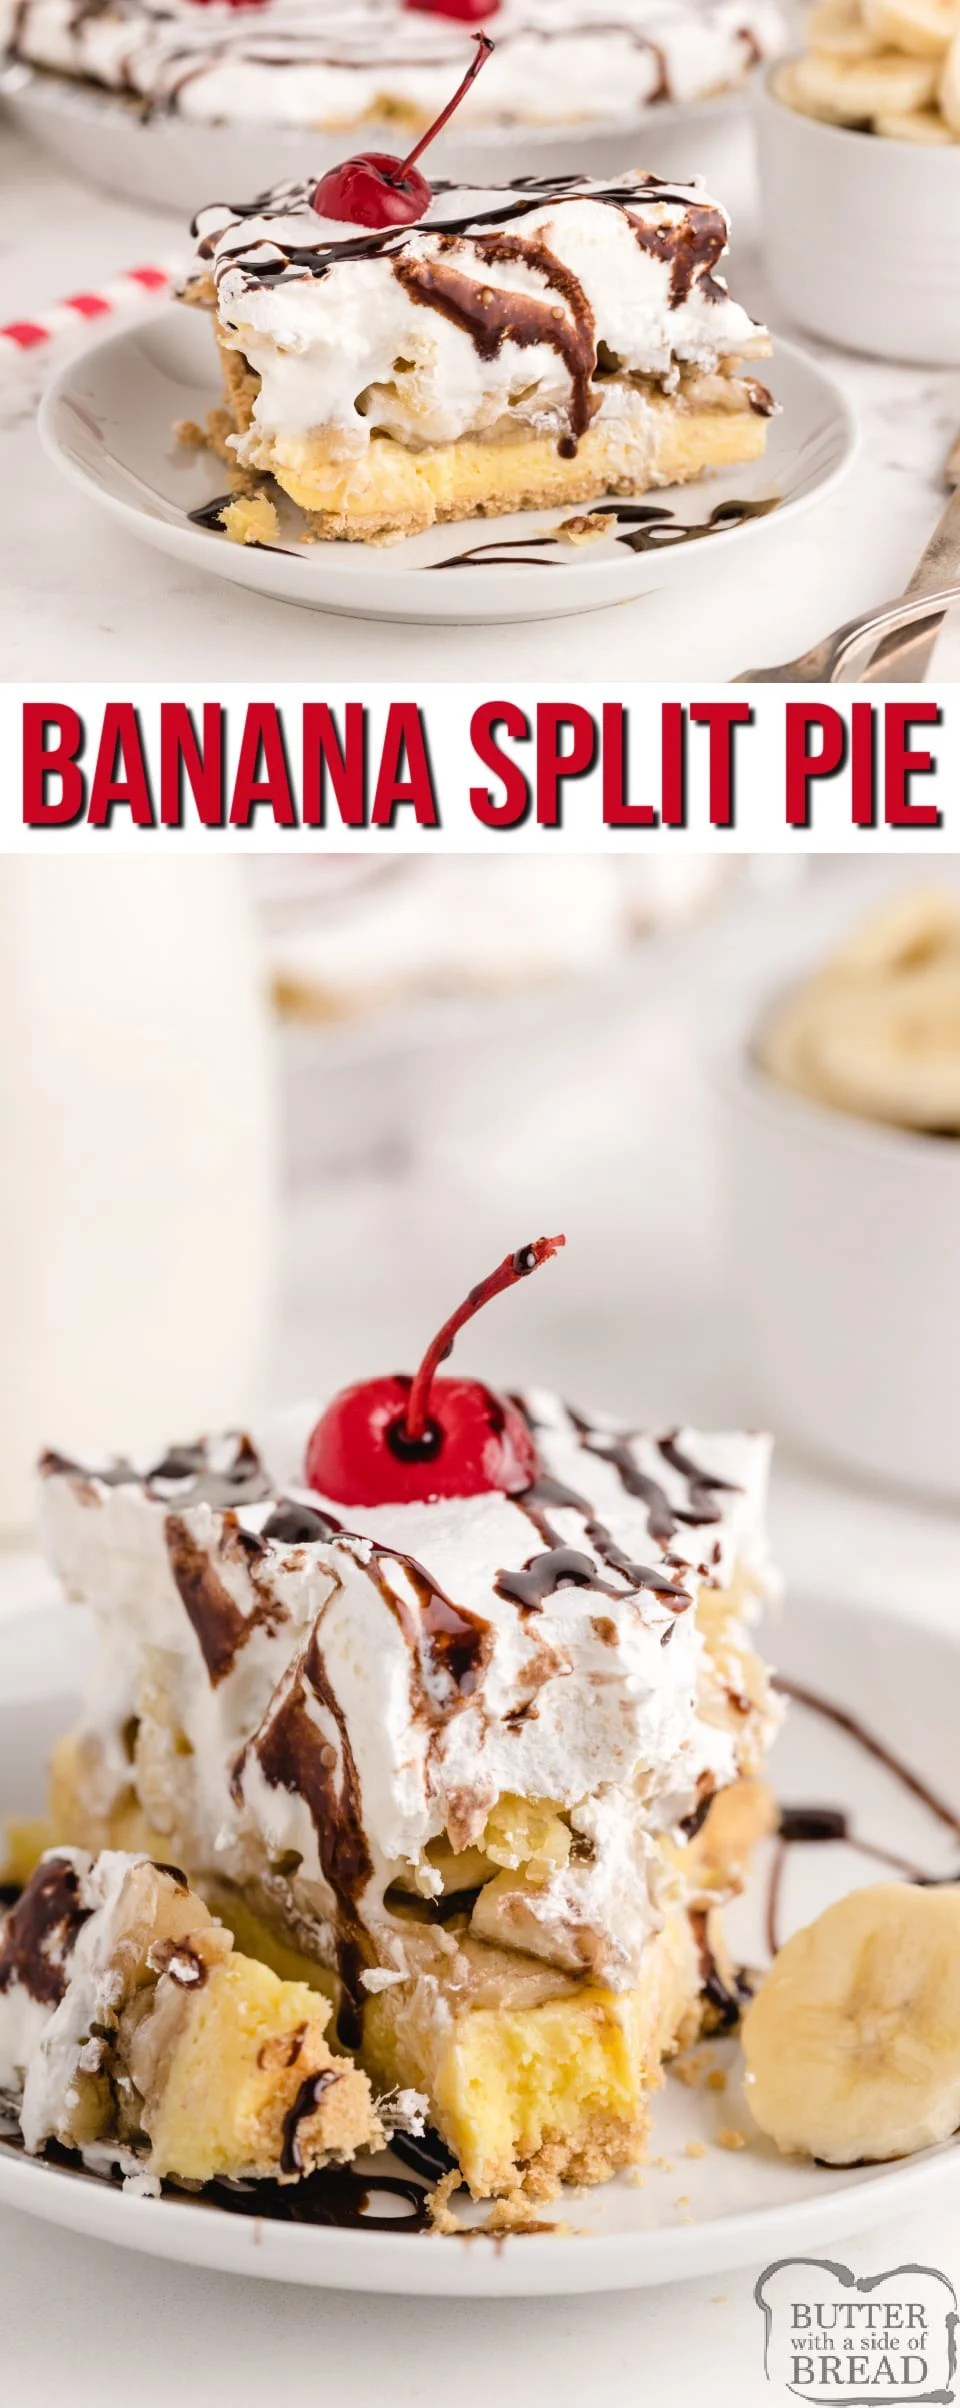 Banana Split Pie is an easy no-bake banana dessert made with a graham cracker pie crust full of cream cheese, bananas, whipped cream, pineapple, chocolate syrup and cherries. A refreshing banana split dessert that is easy to make and serve!